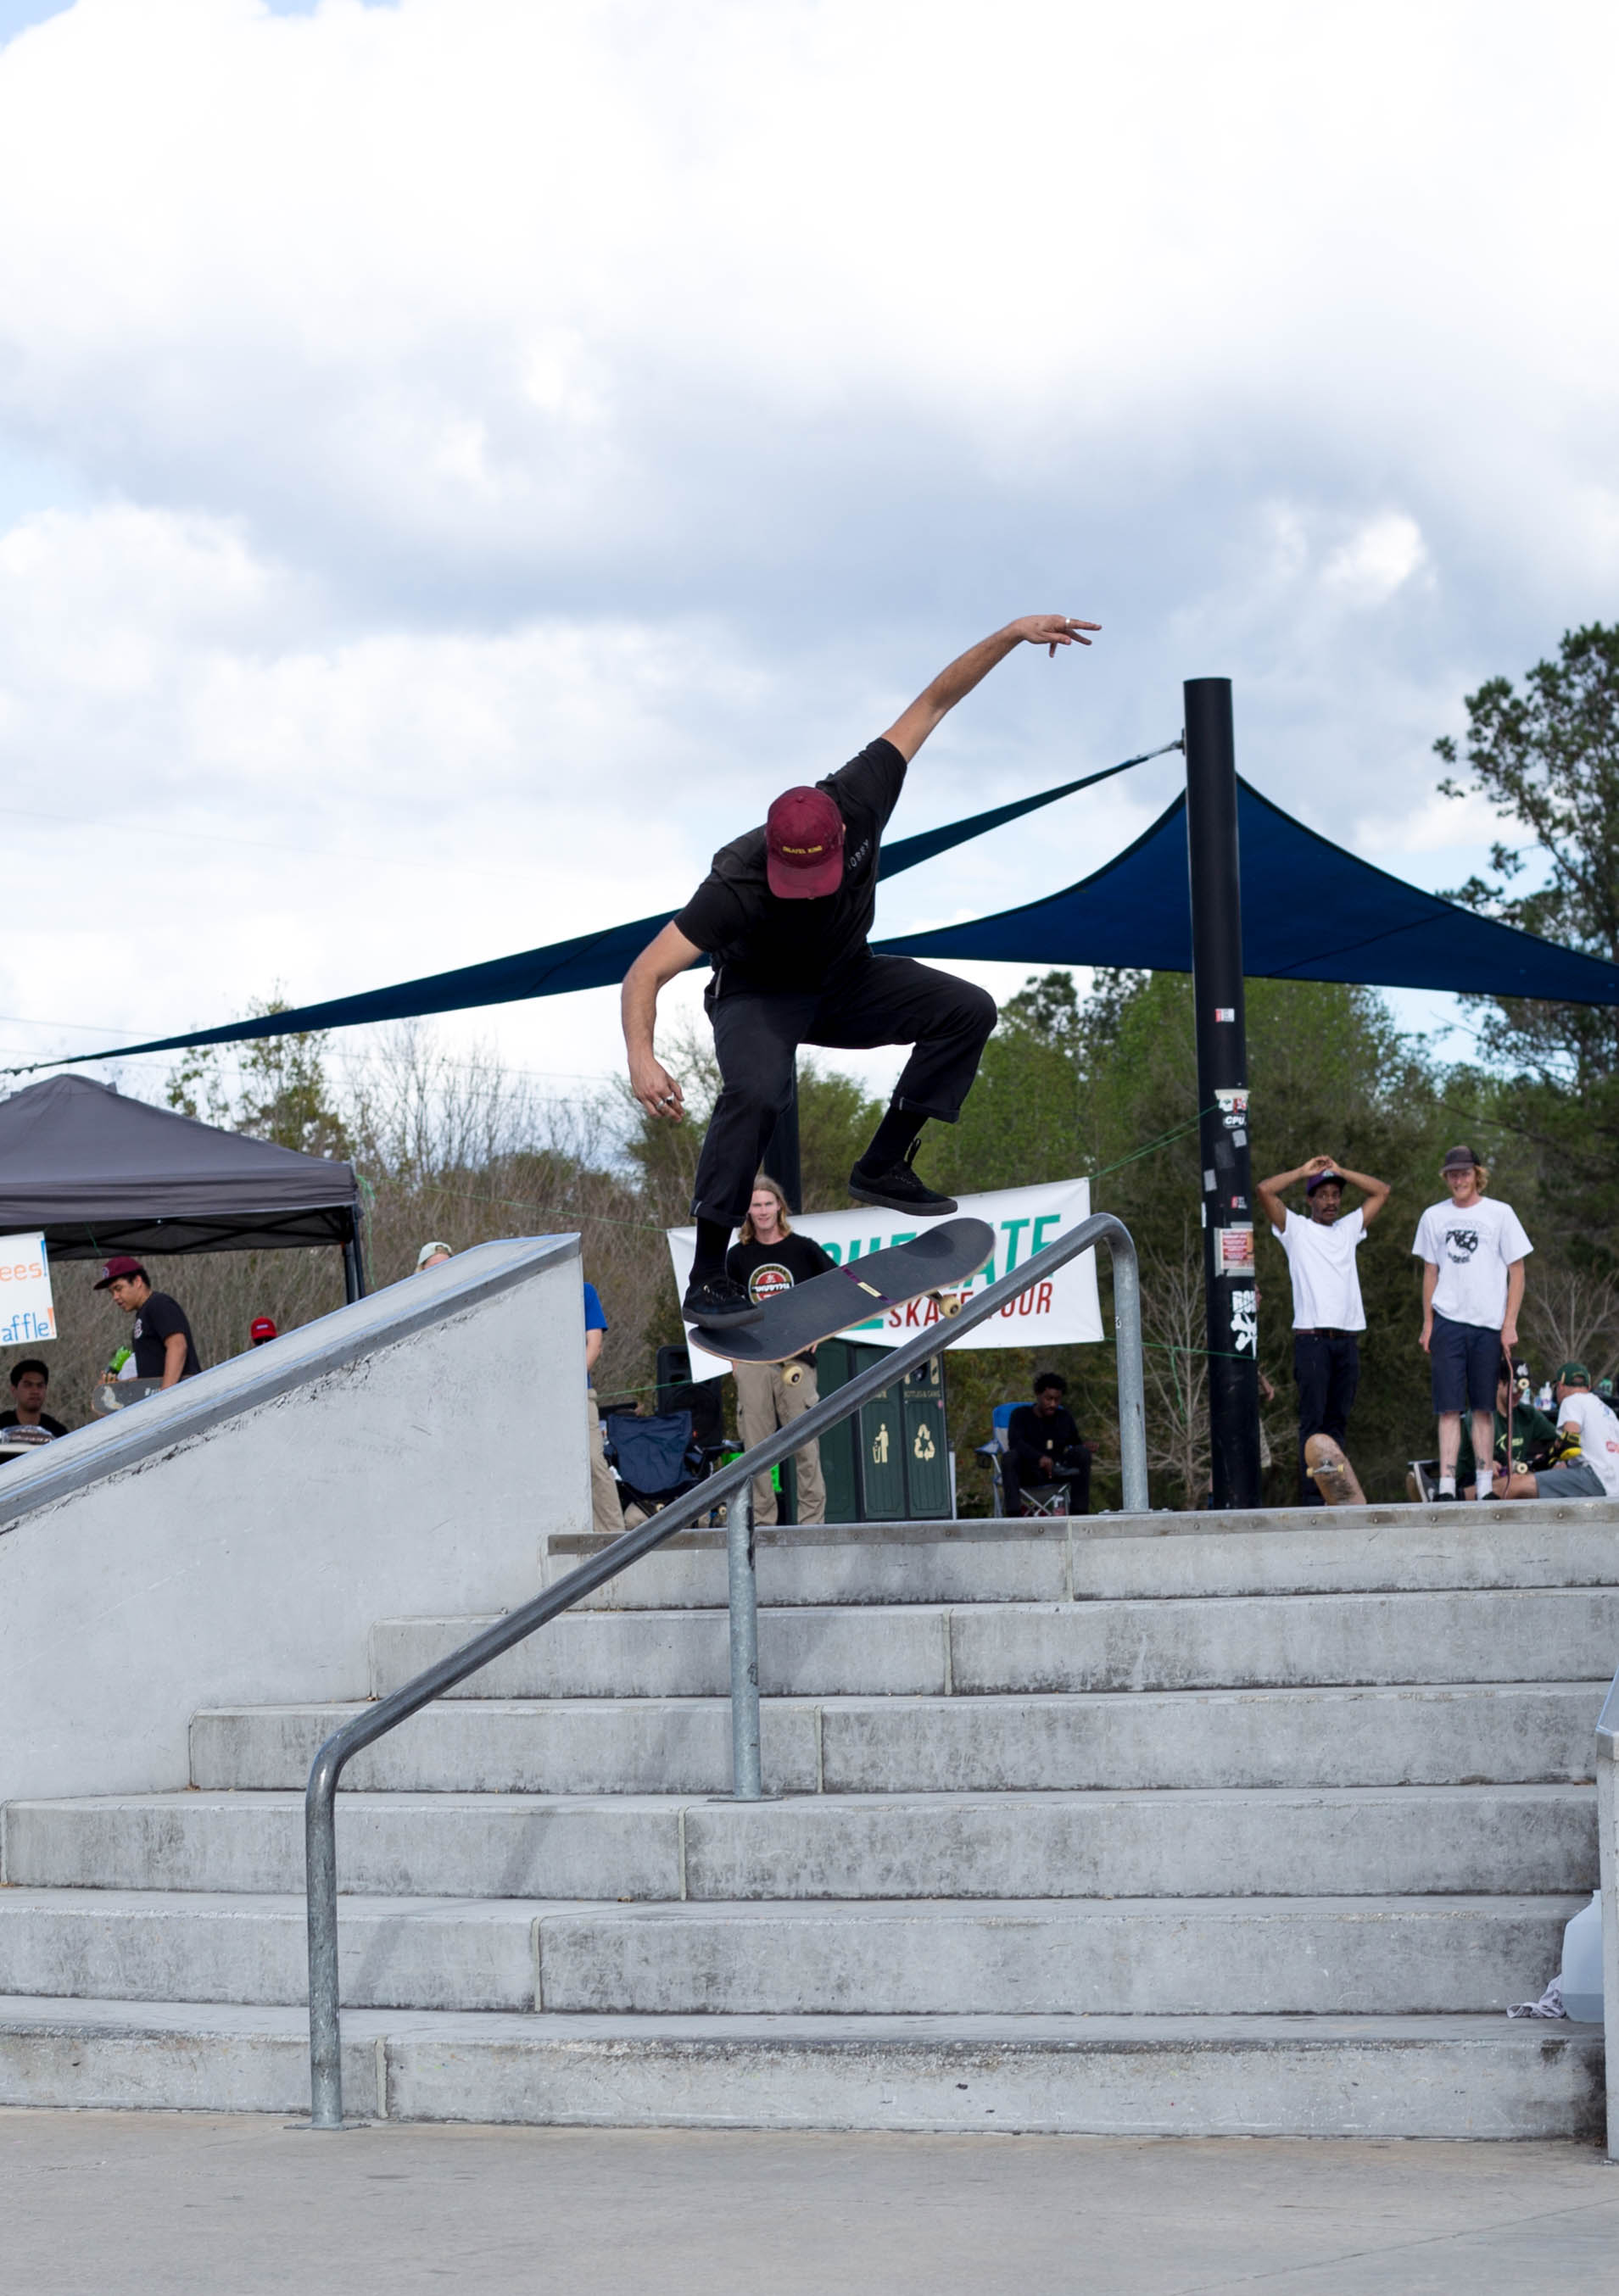 Big kickflip crook! John Belote